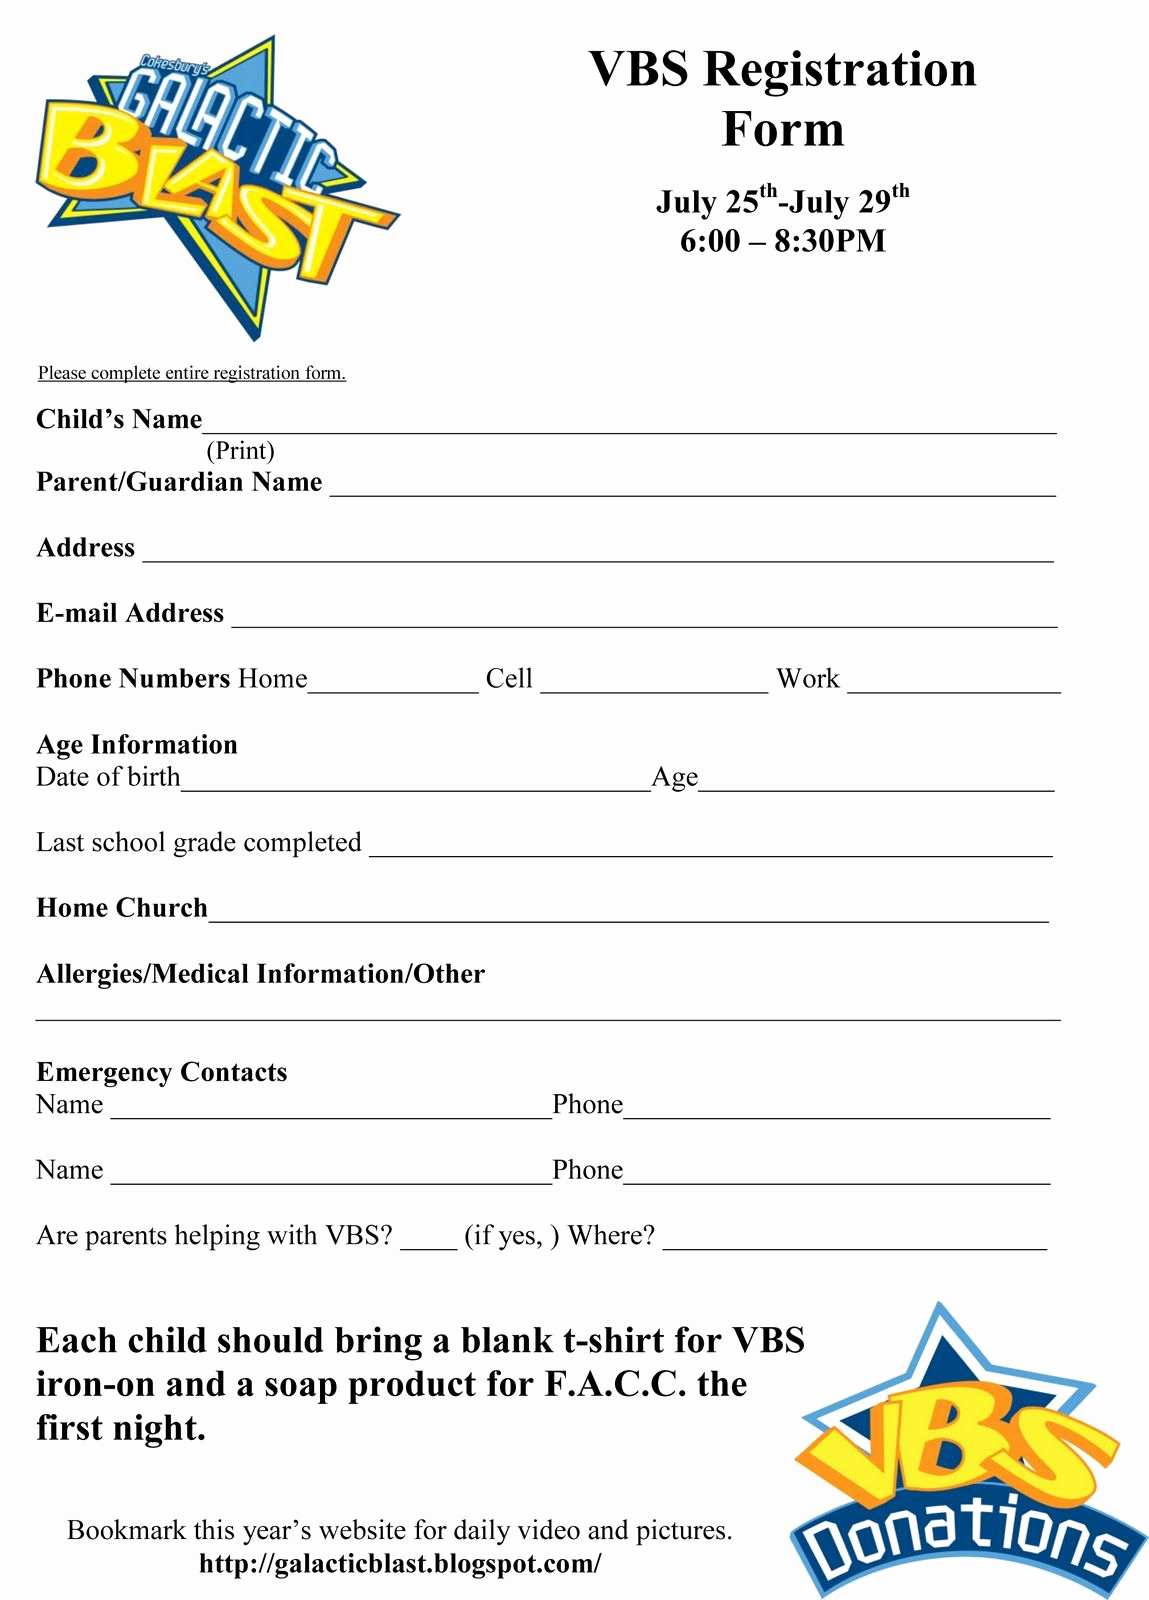 Free Registration forms Template New Free Vbs Registration form Template Vbs